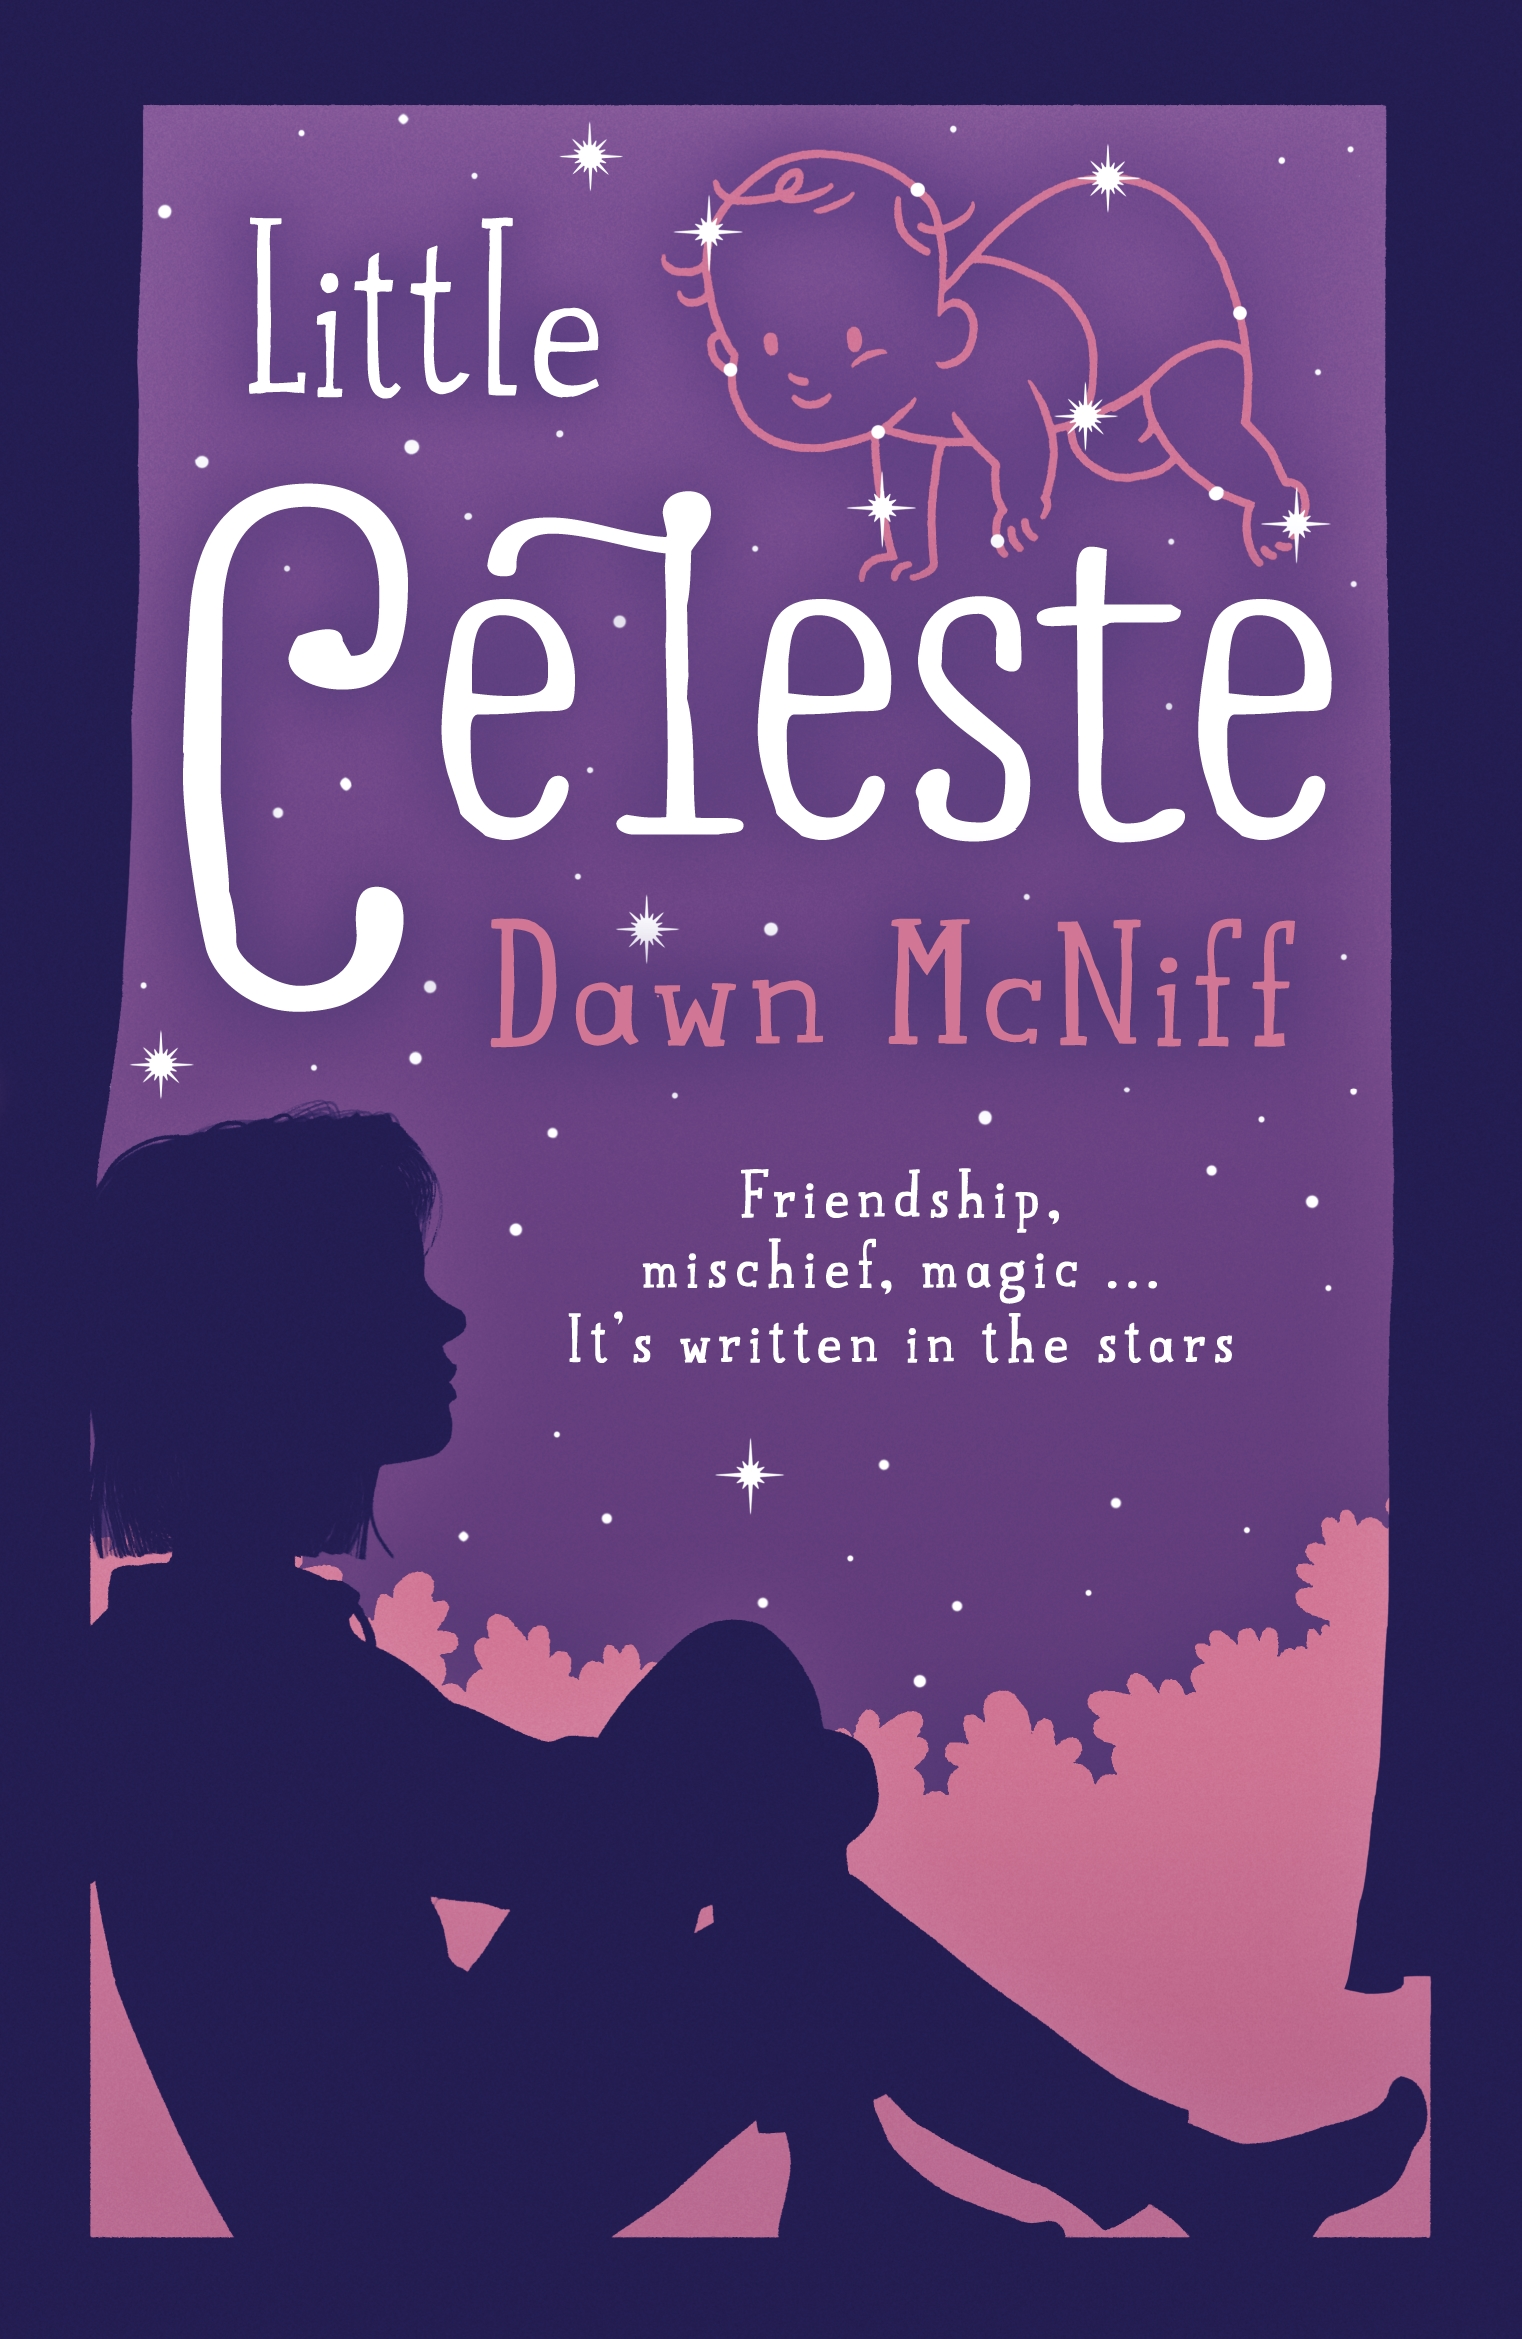 Little Celeste by Dawn McNiff